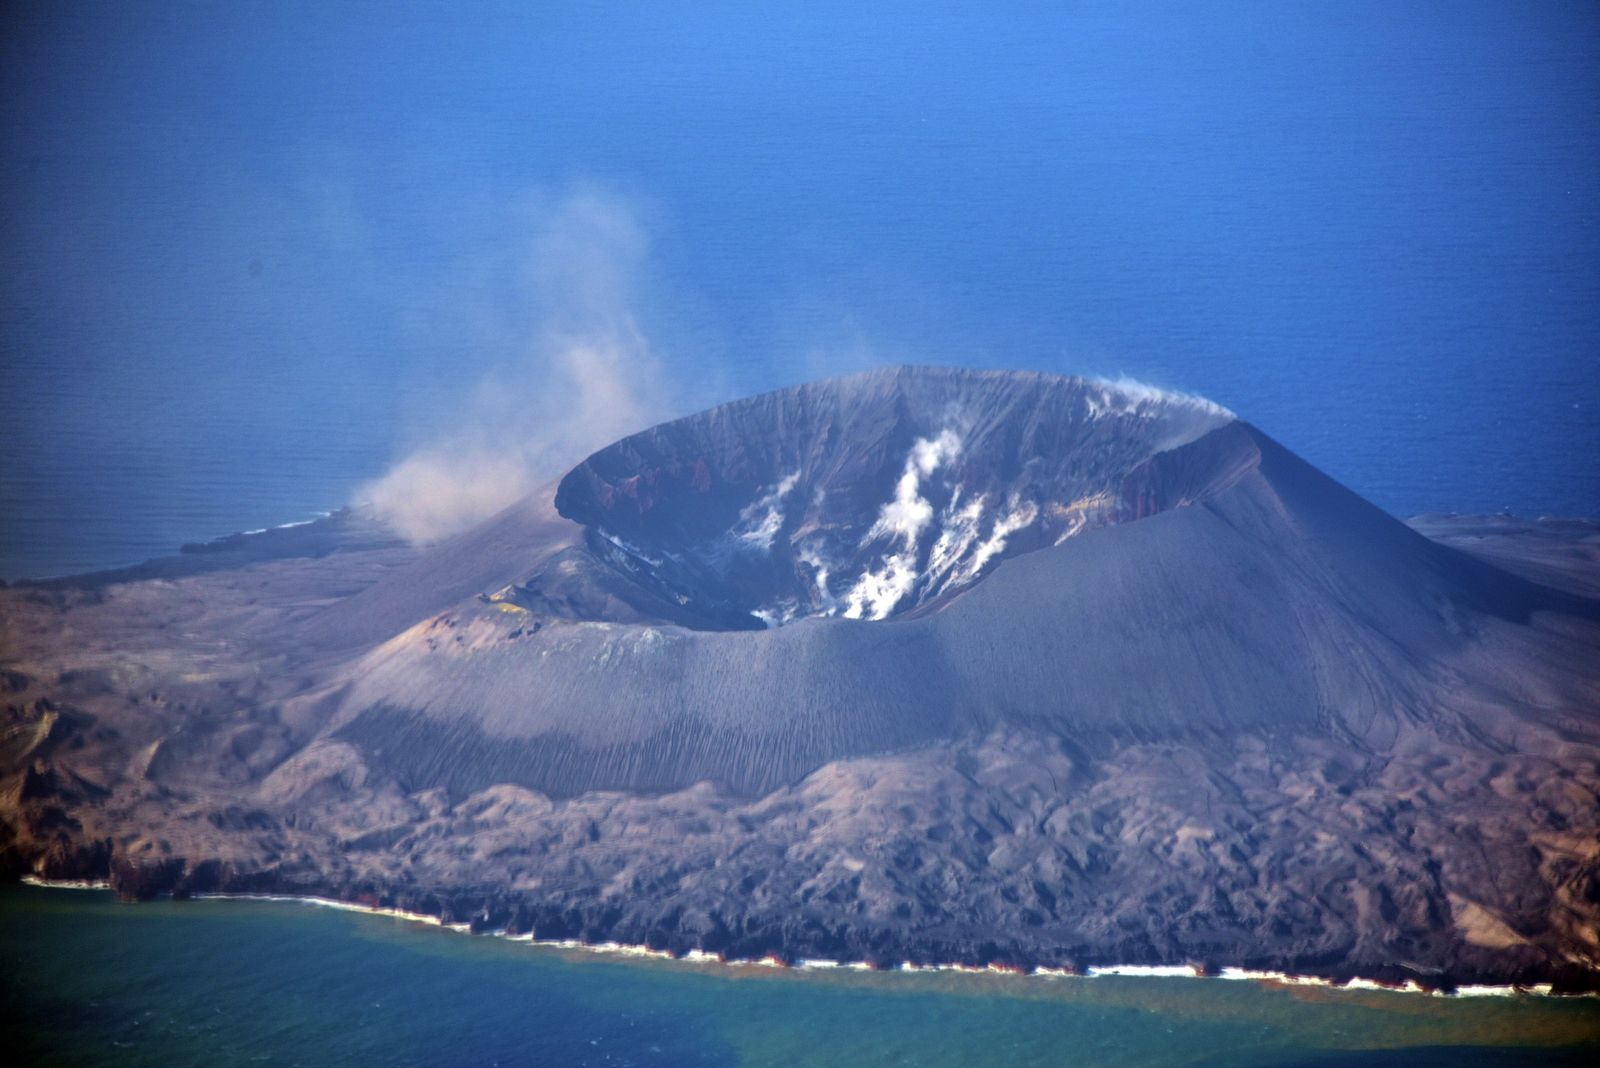 Nishinoshima - overview of 24.11.2020 - fumaroles inside the crater and on the edges - photo Japan Coast Guards